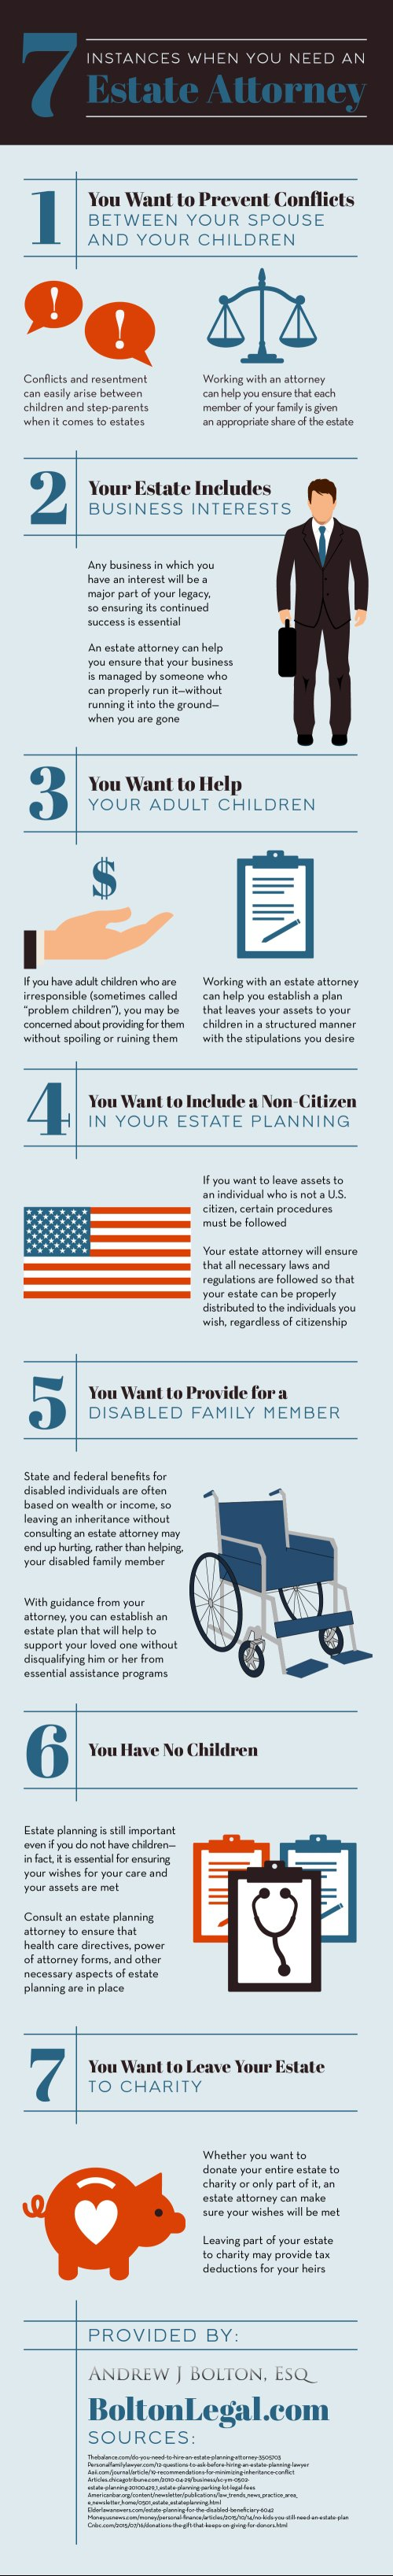 7 Instances When You Need an Estate Attorney [Infographic]